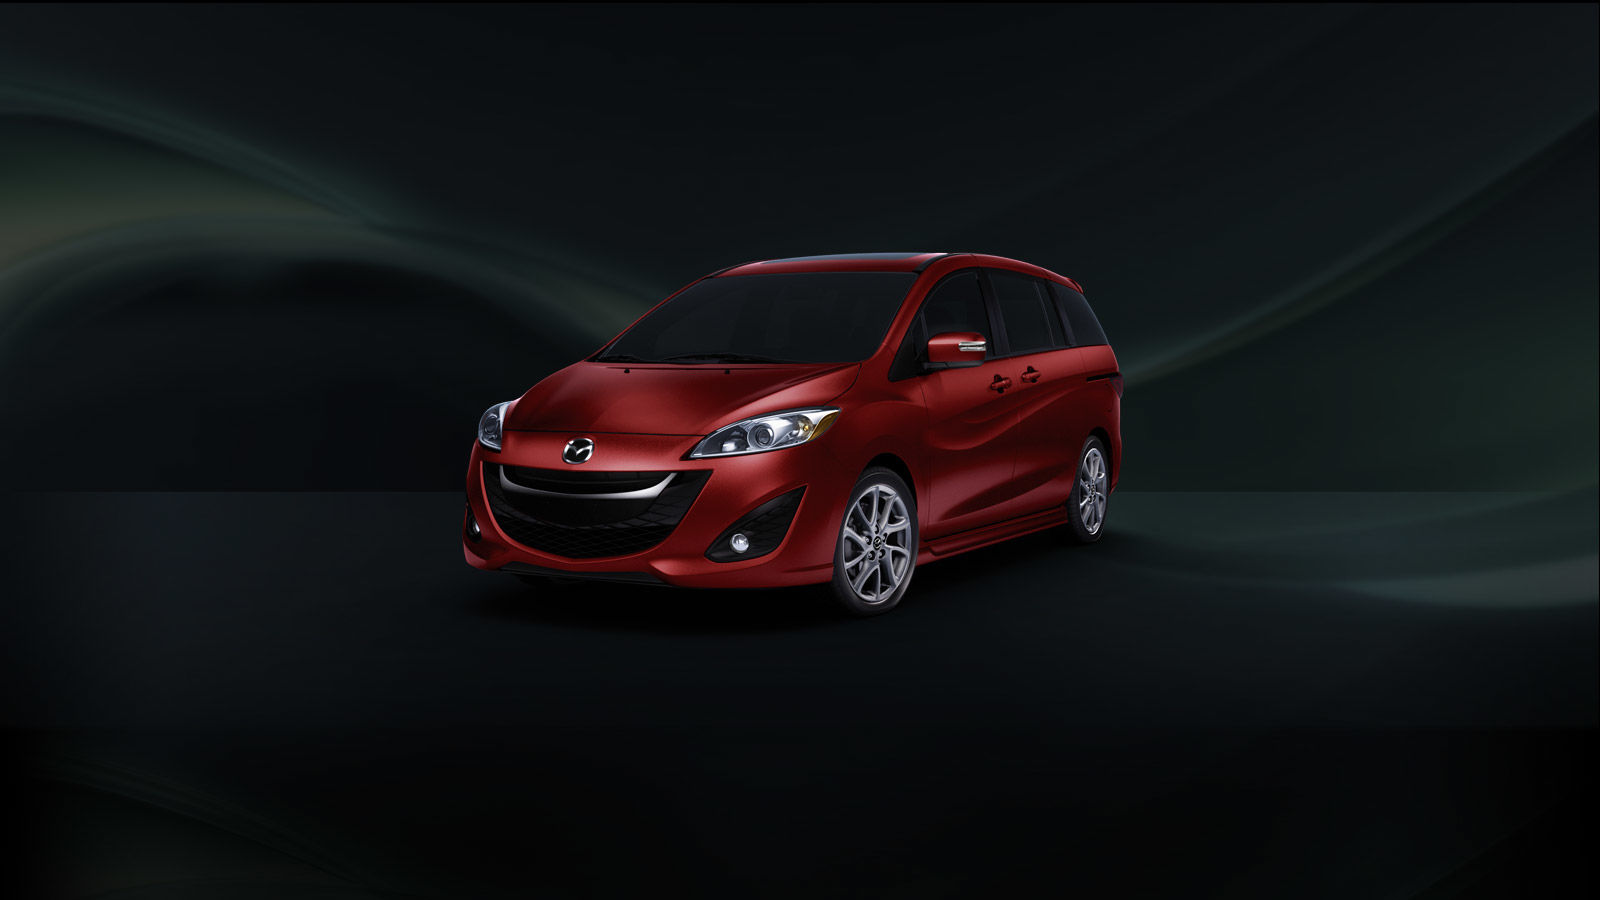 2015 Mazda 5: a minivan for those who love to drive